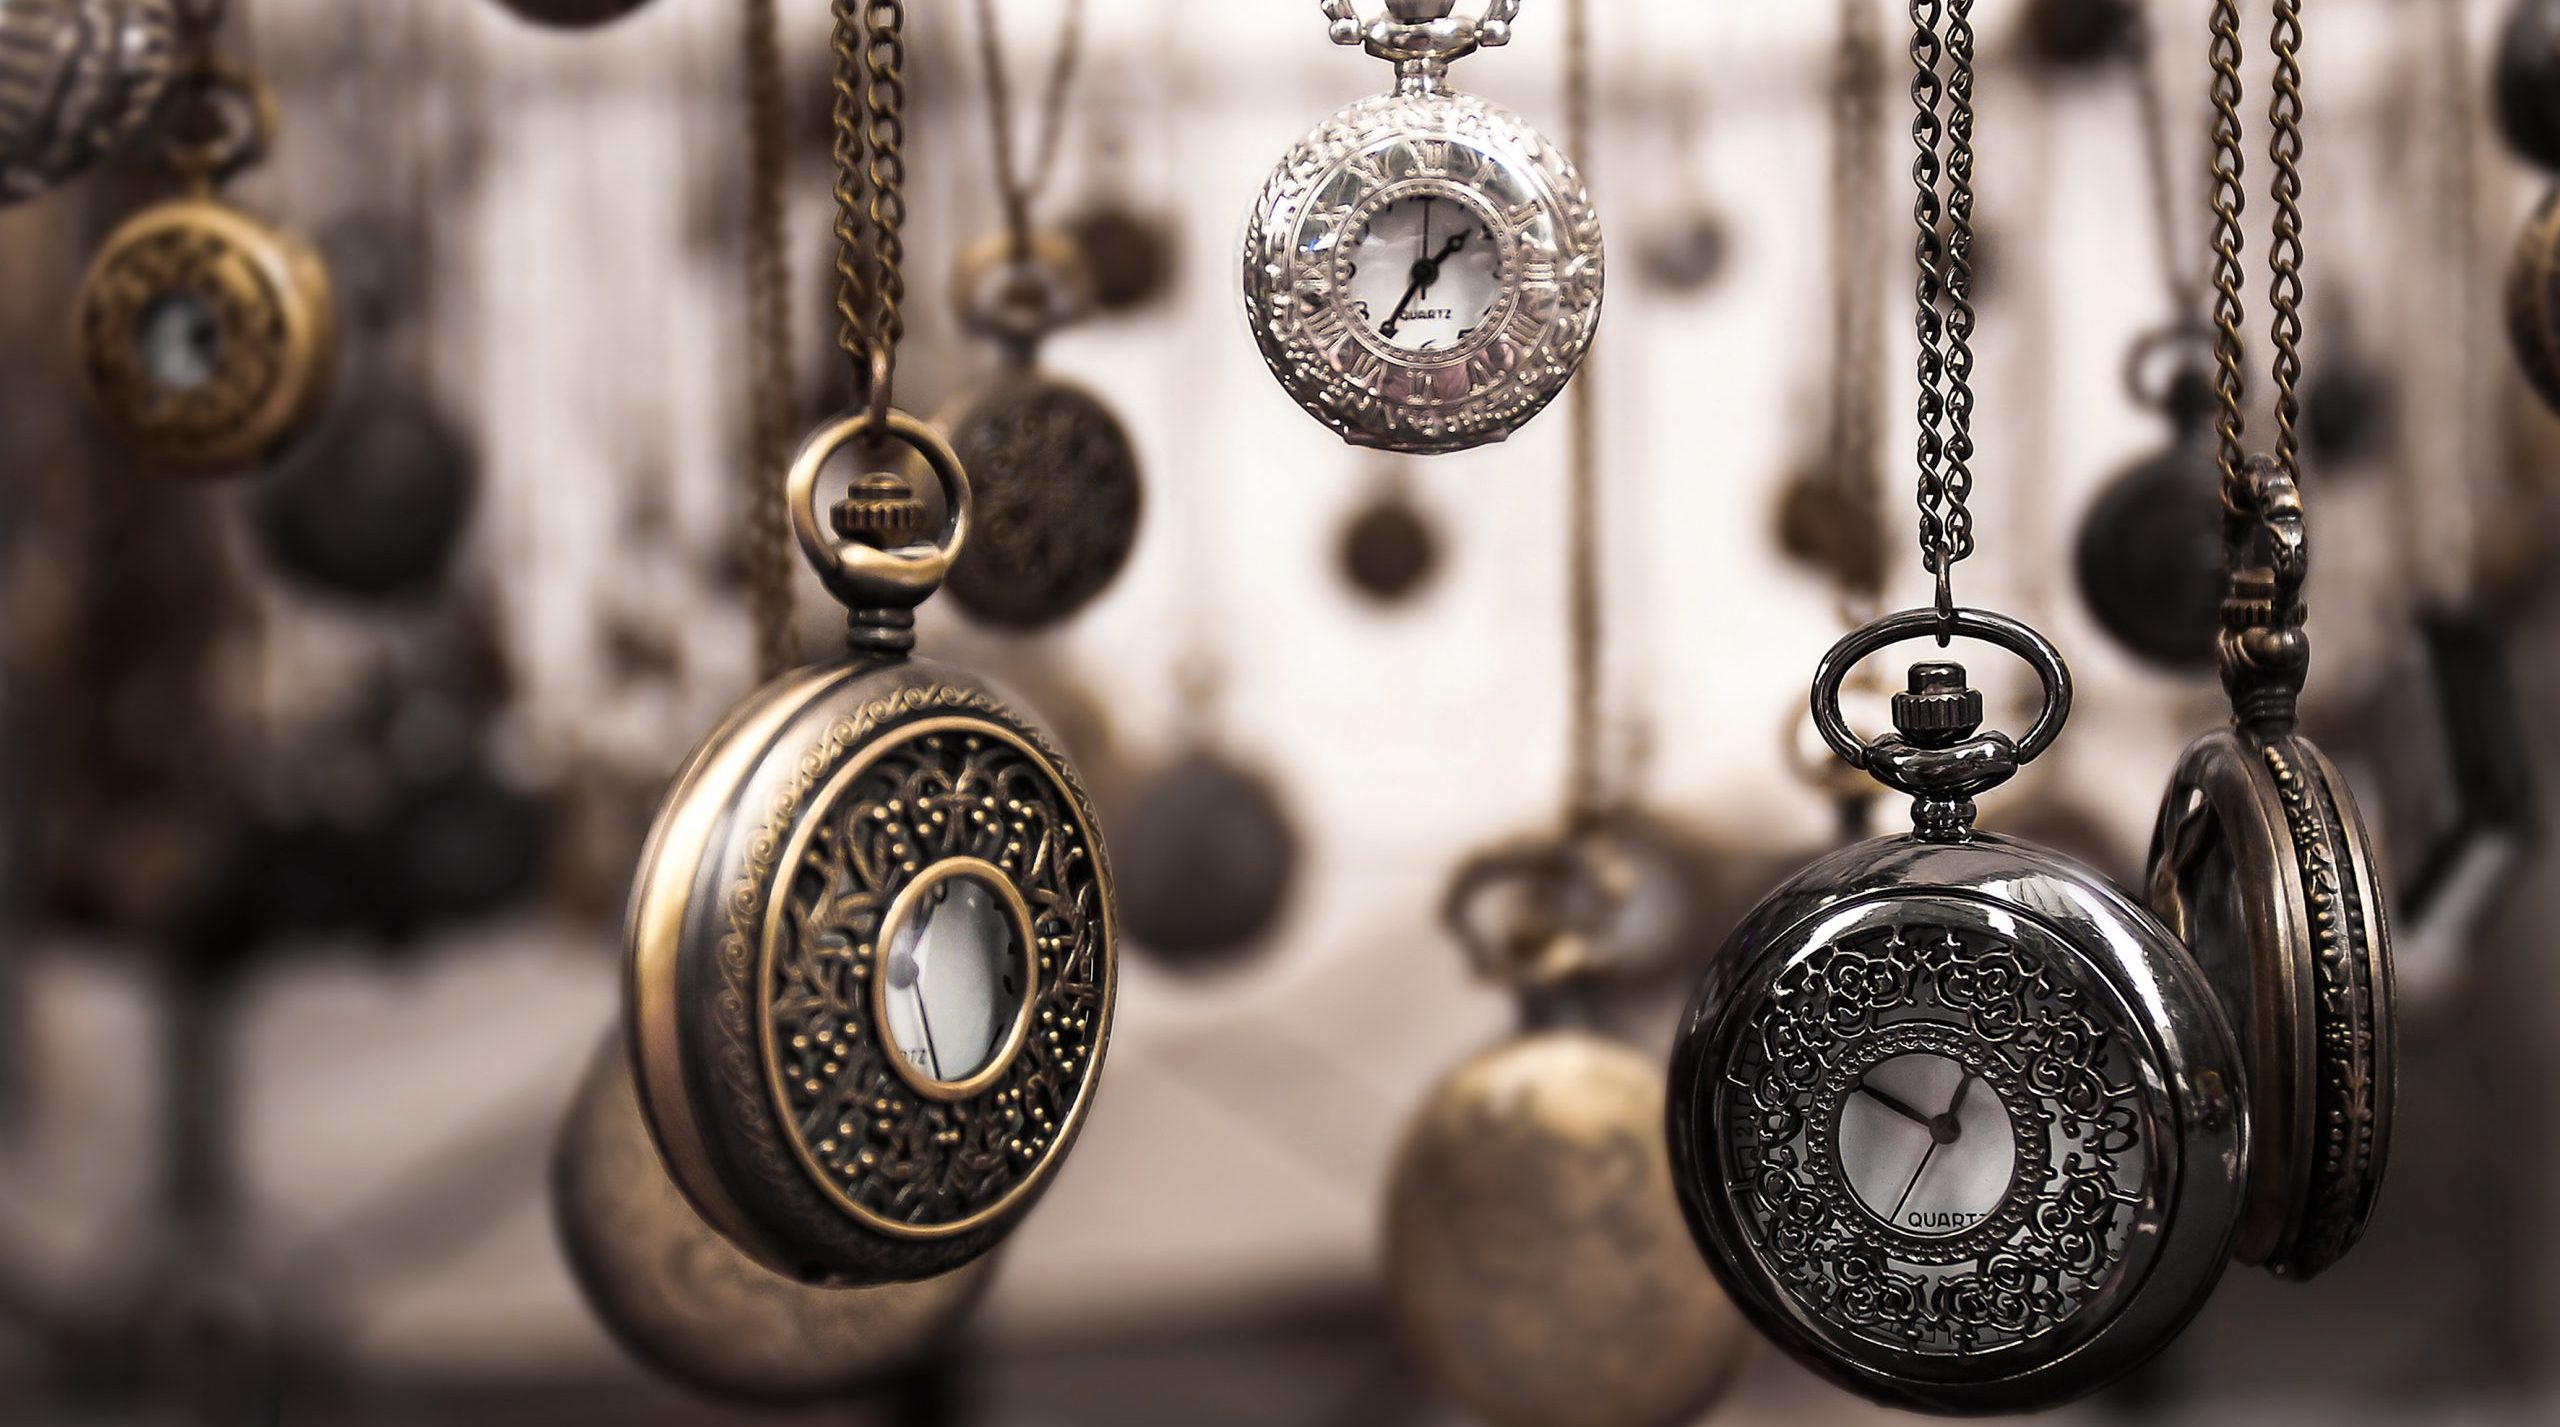 Pocket watches to time SEO results.